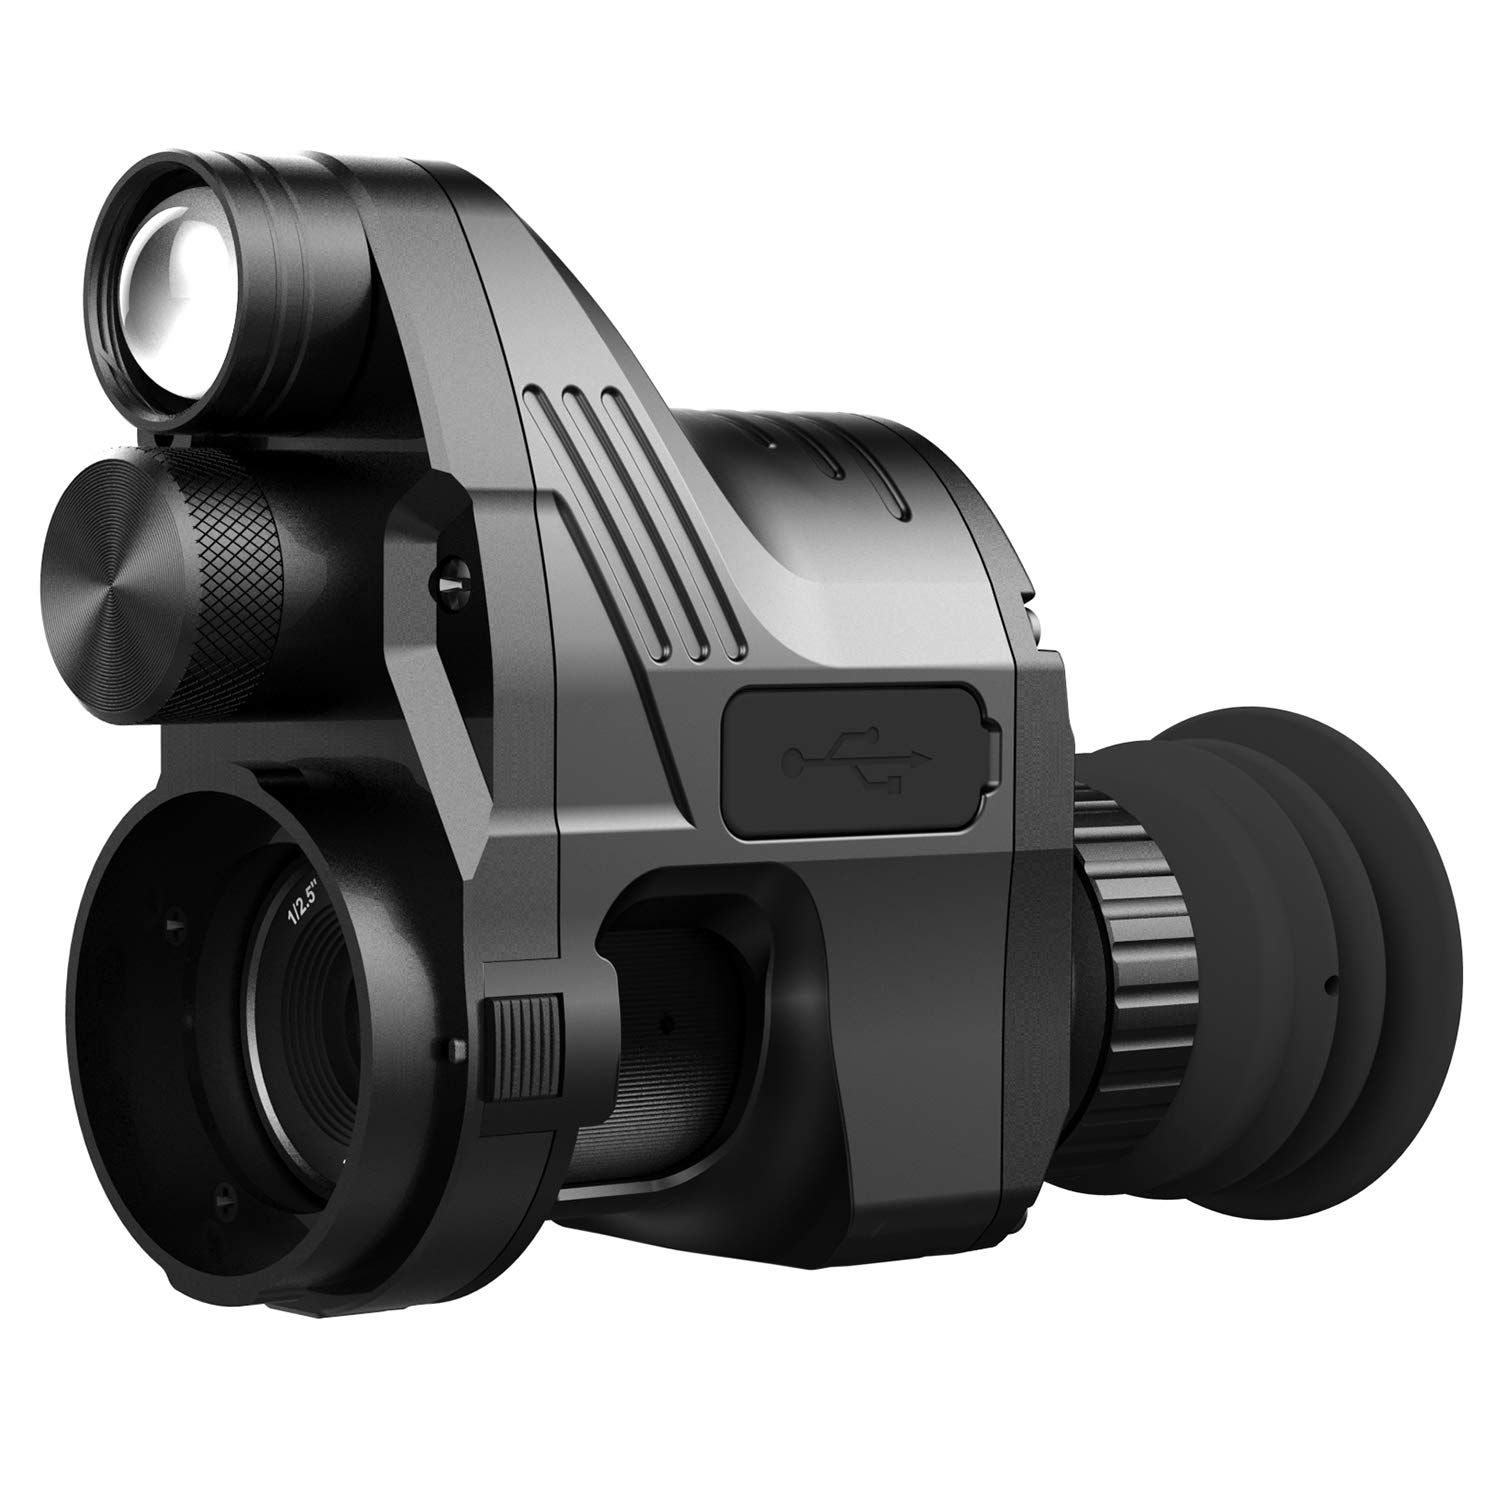 Ohhunt Pard Nv007 4x Sight Aiming Modified Infrared Monocular Night Vision Tactical Riflescope Camer Hunting Cameras Monoculars Night Vision